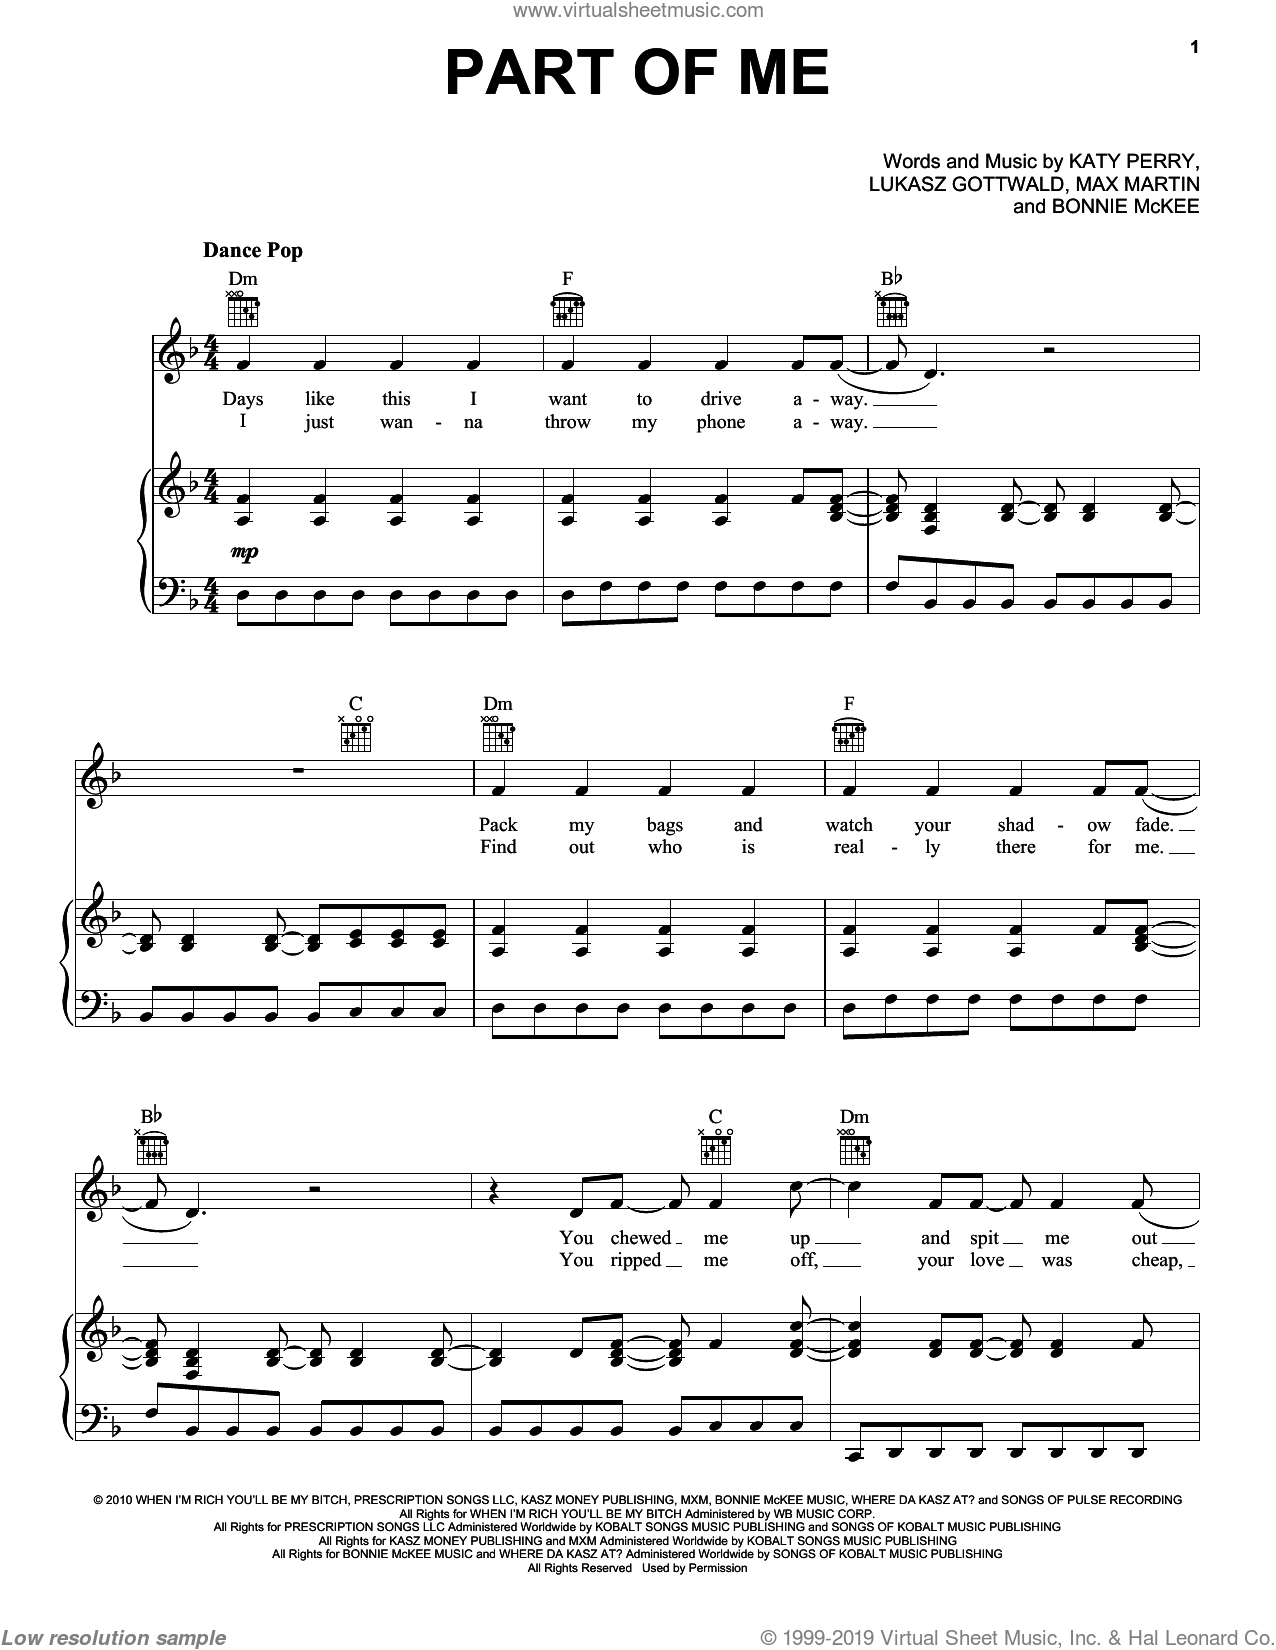 Part Of Me sheet music for voice, piano or guitar by Katy Perry, Bonnie McKee, Lukasz Gottwald and Max Martin, intermediate skill level